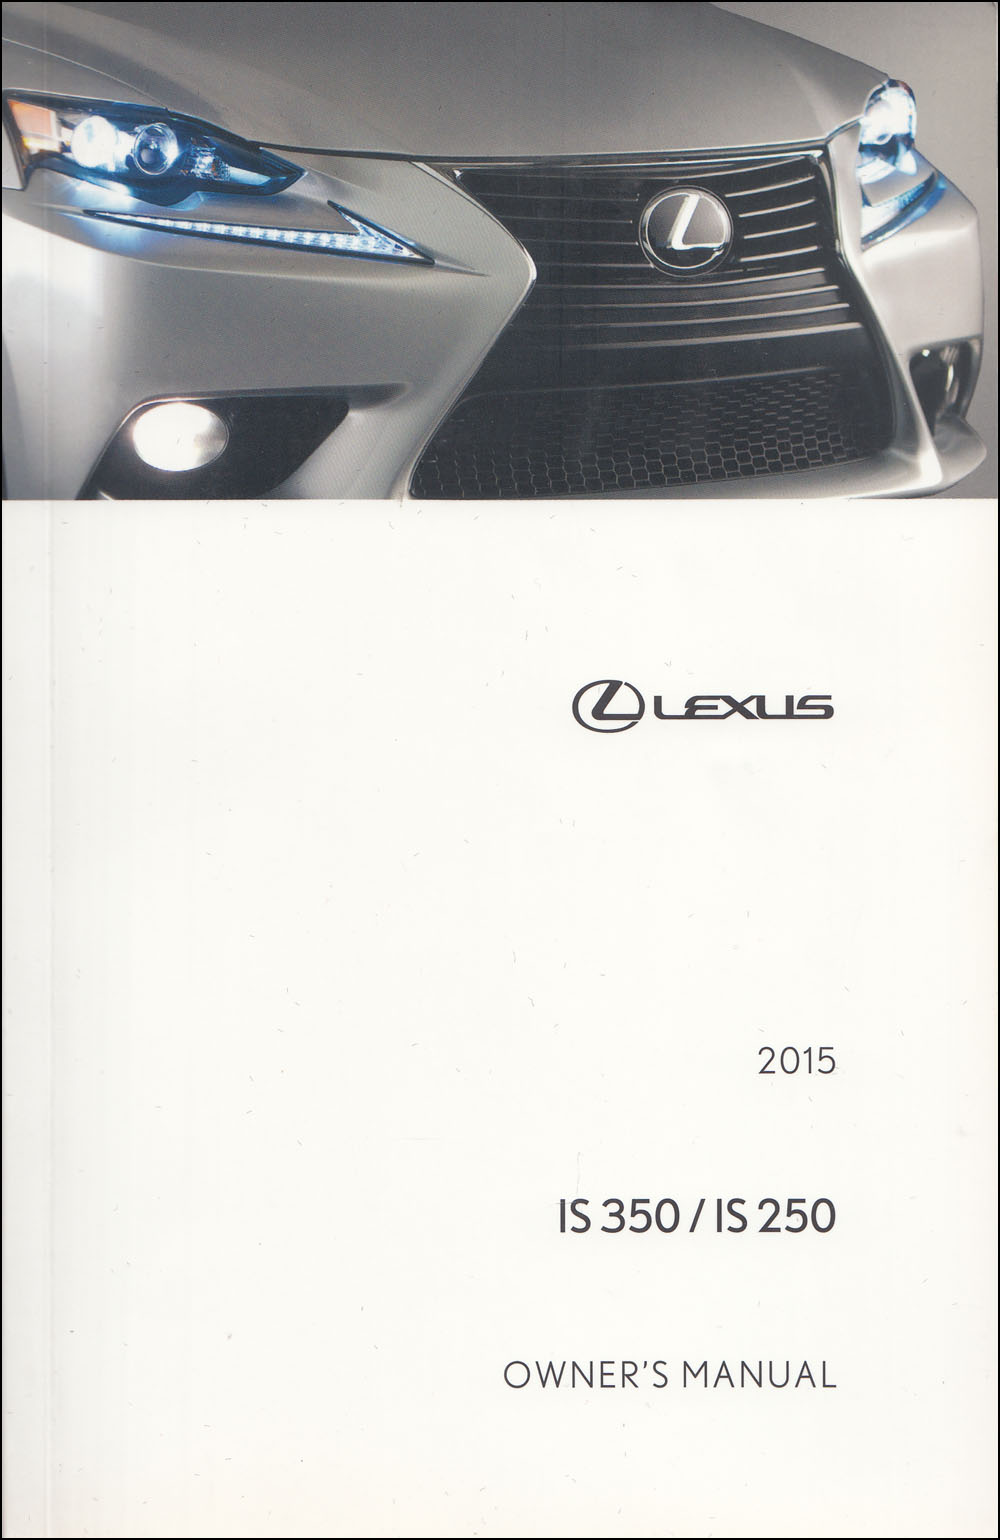 2015 Lexus IS 350 / IS 250 Sedan Owner's Manual Original